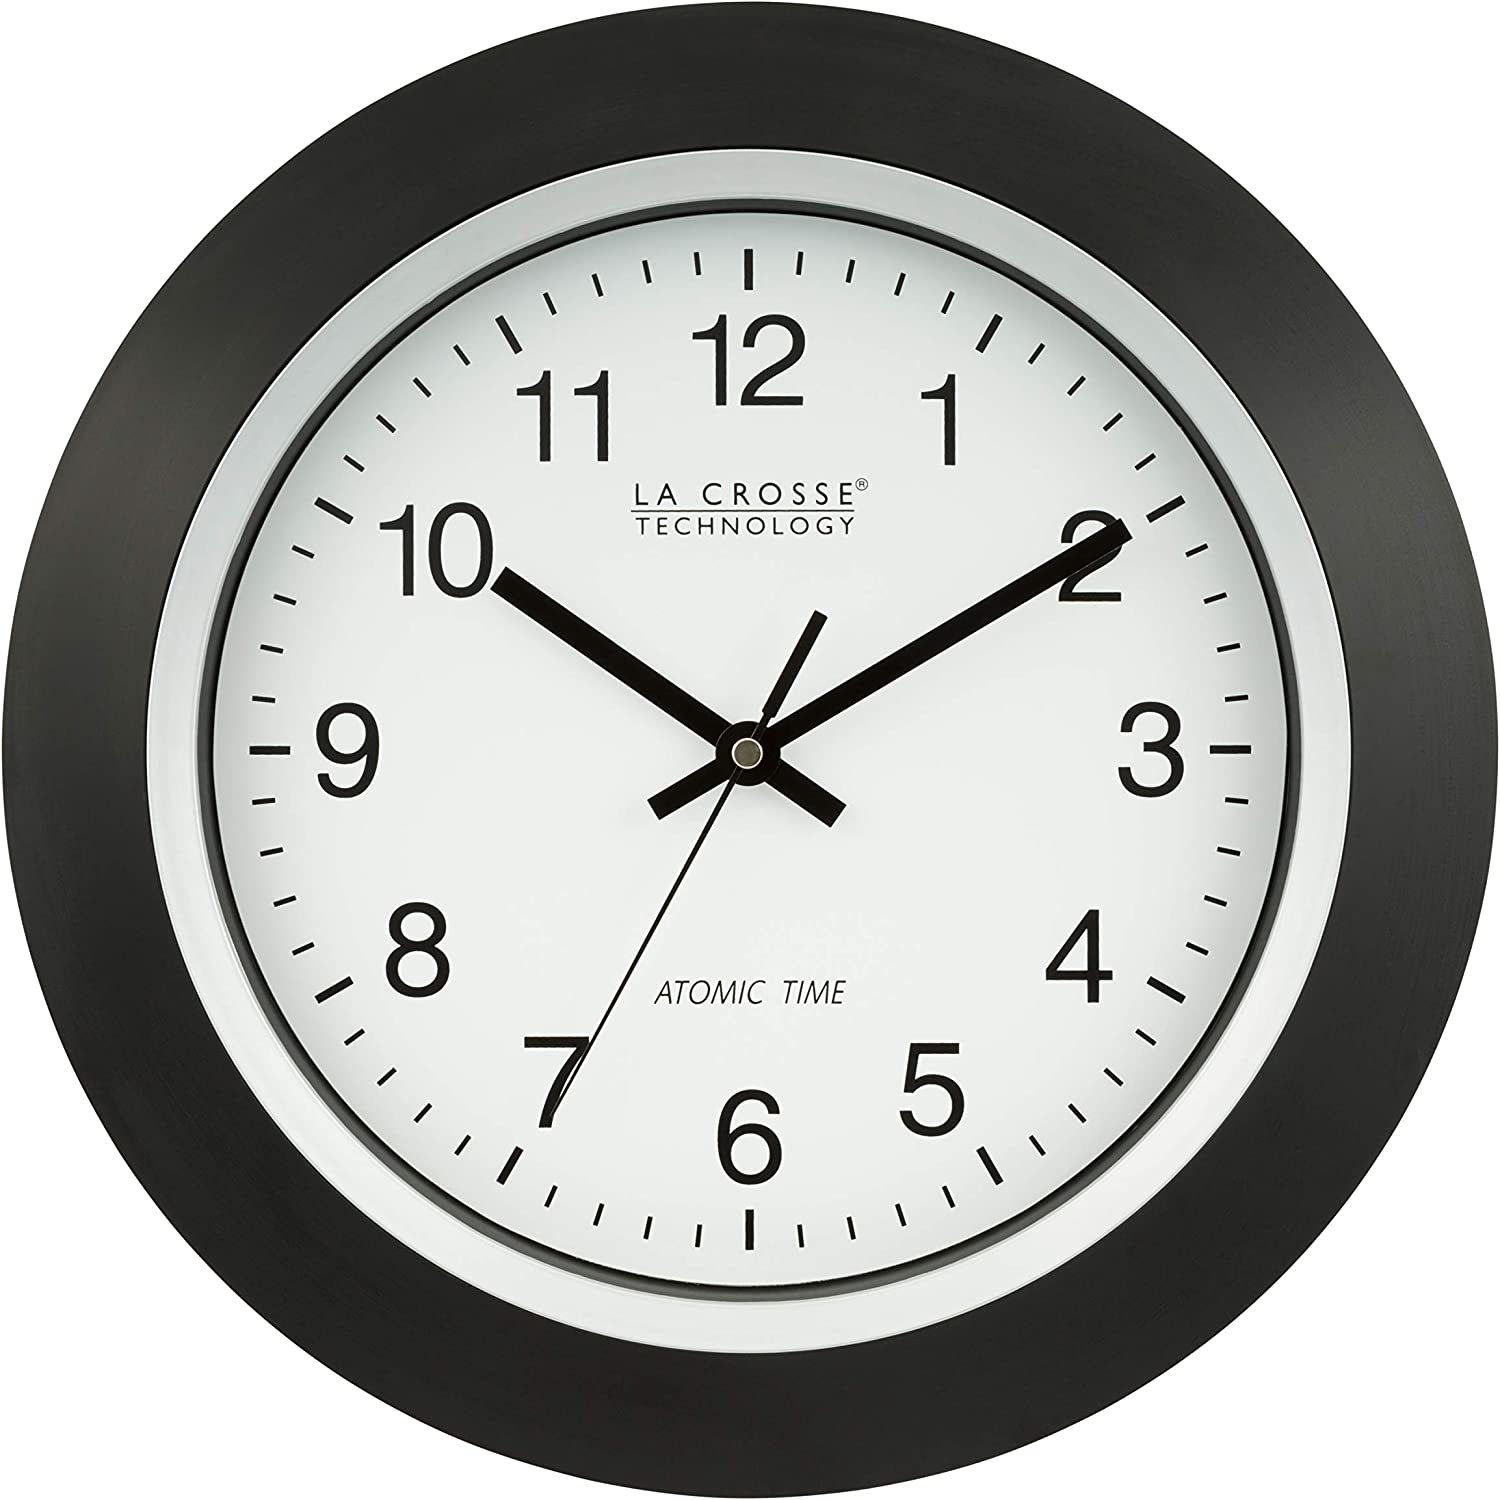 La Crosse Technology 404-1236 13.5-Inch Analog Atomic Black Frame Clock